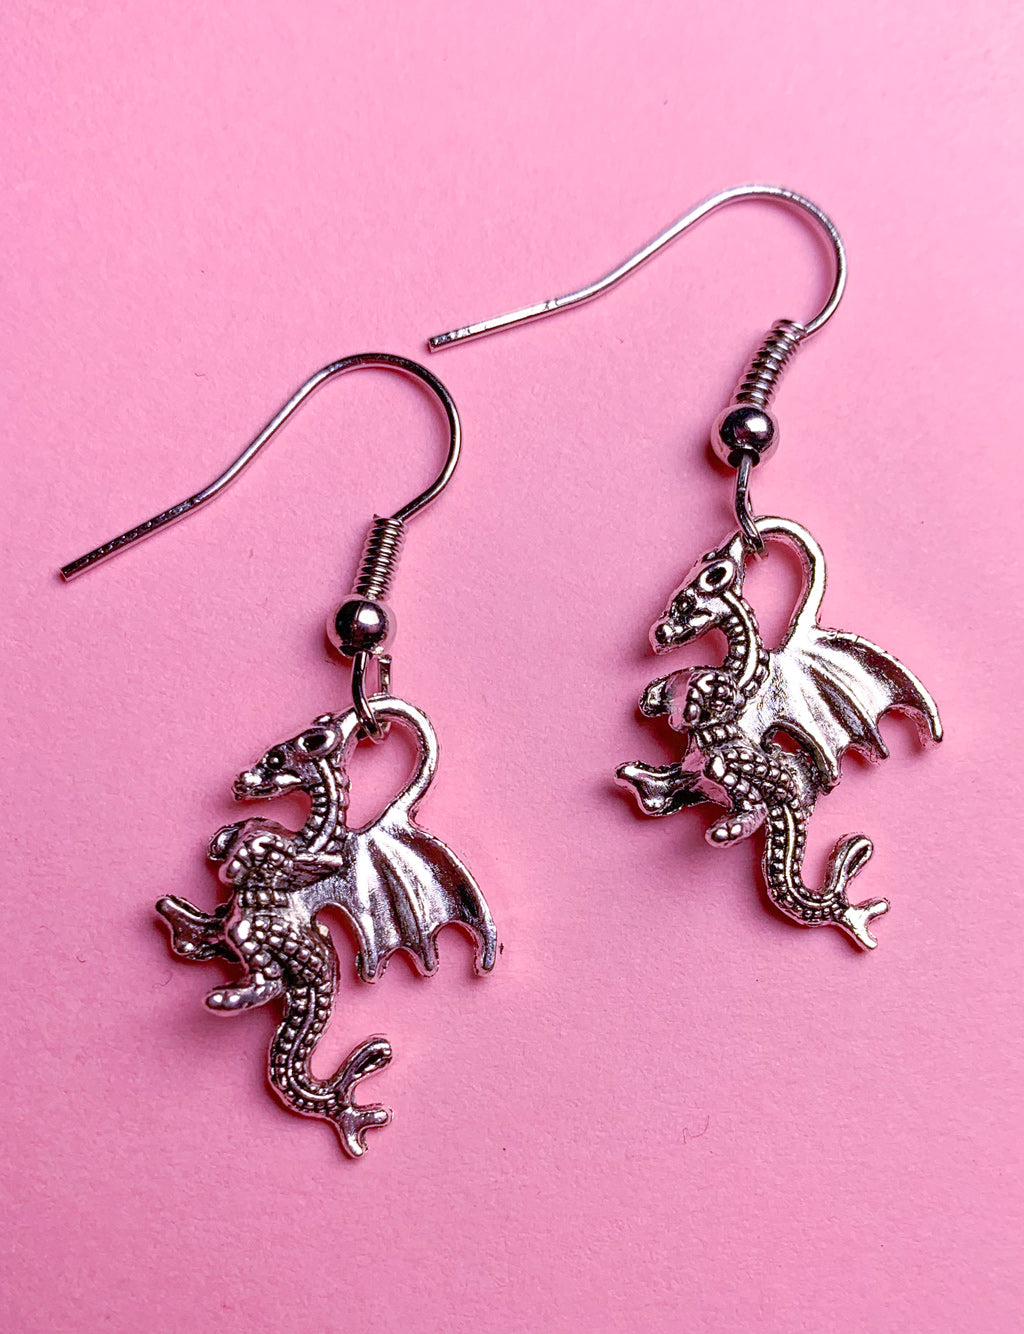 FLYING DRAGON EARRINGS